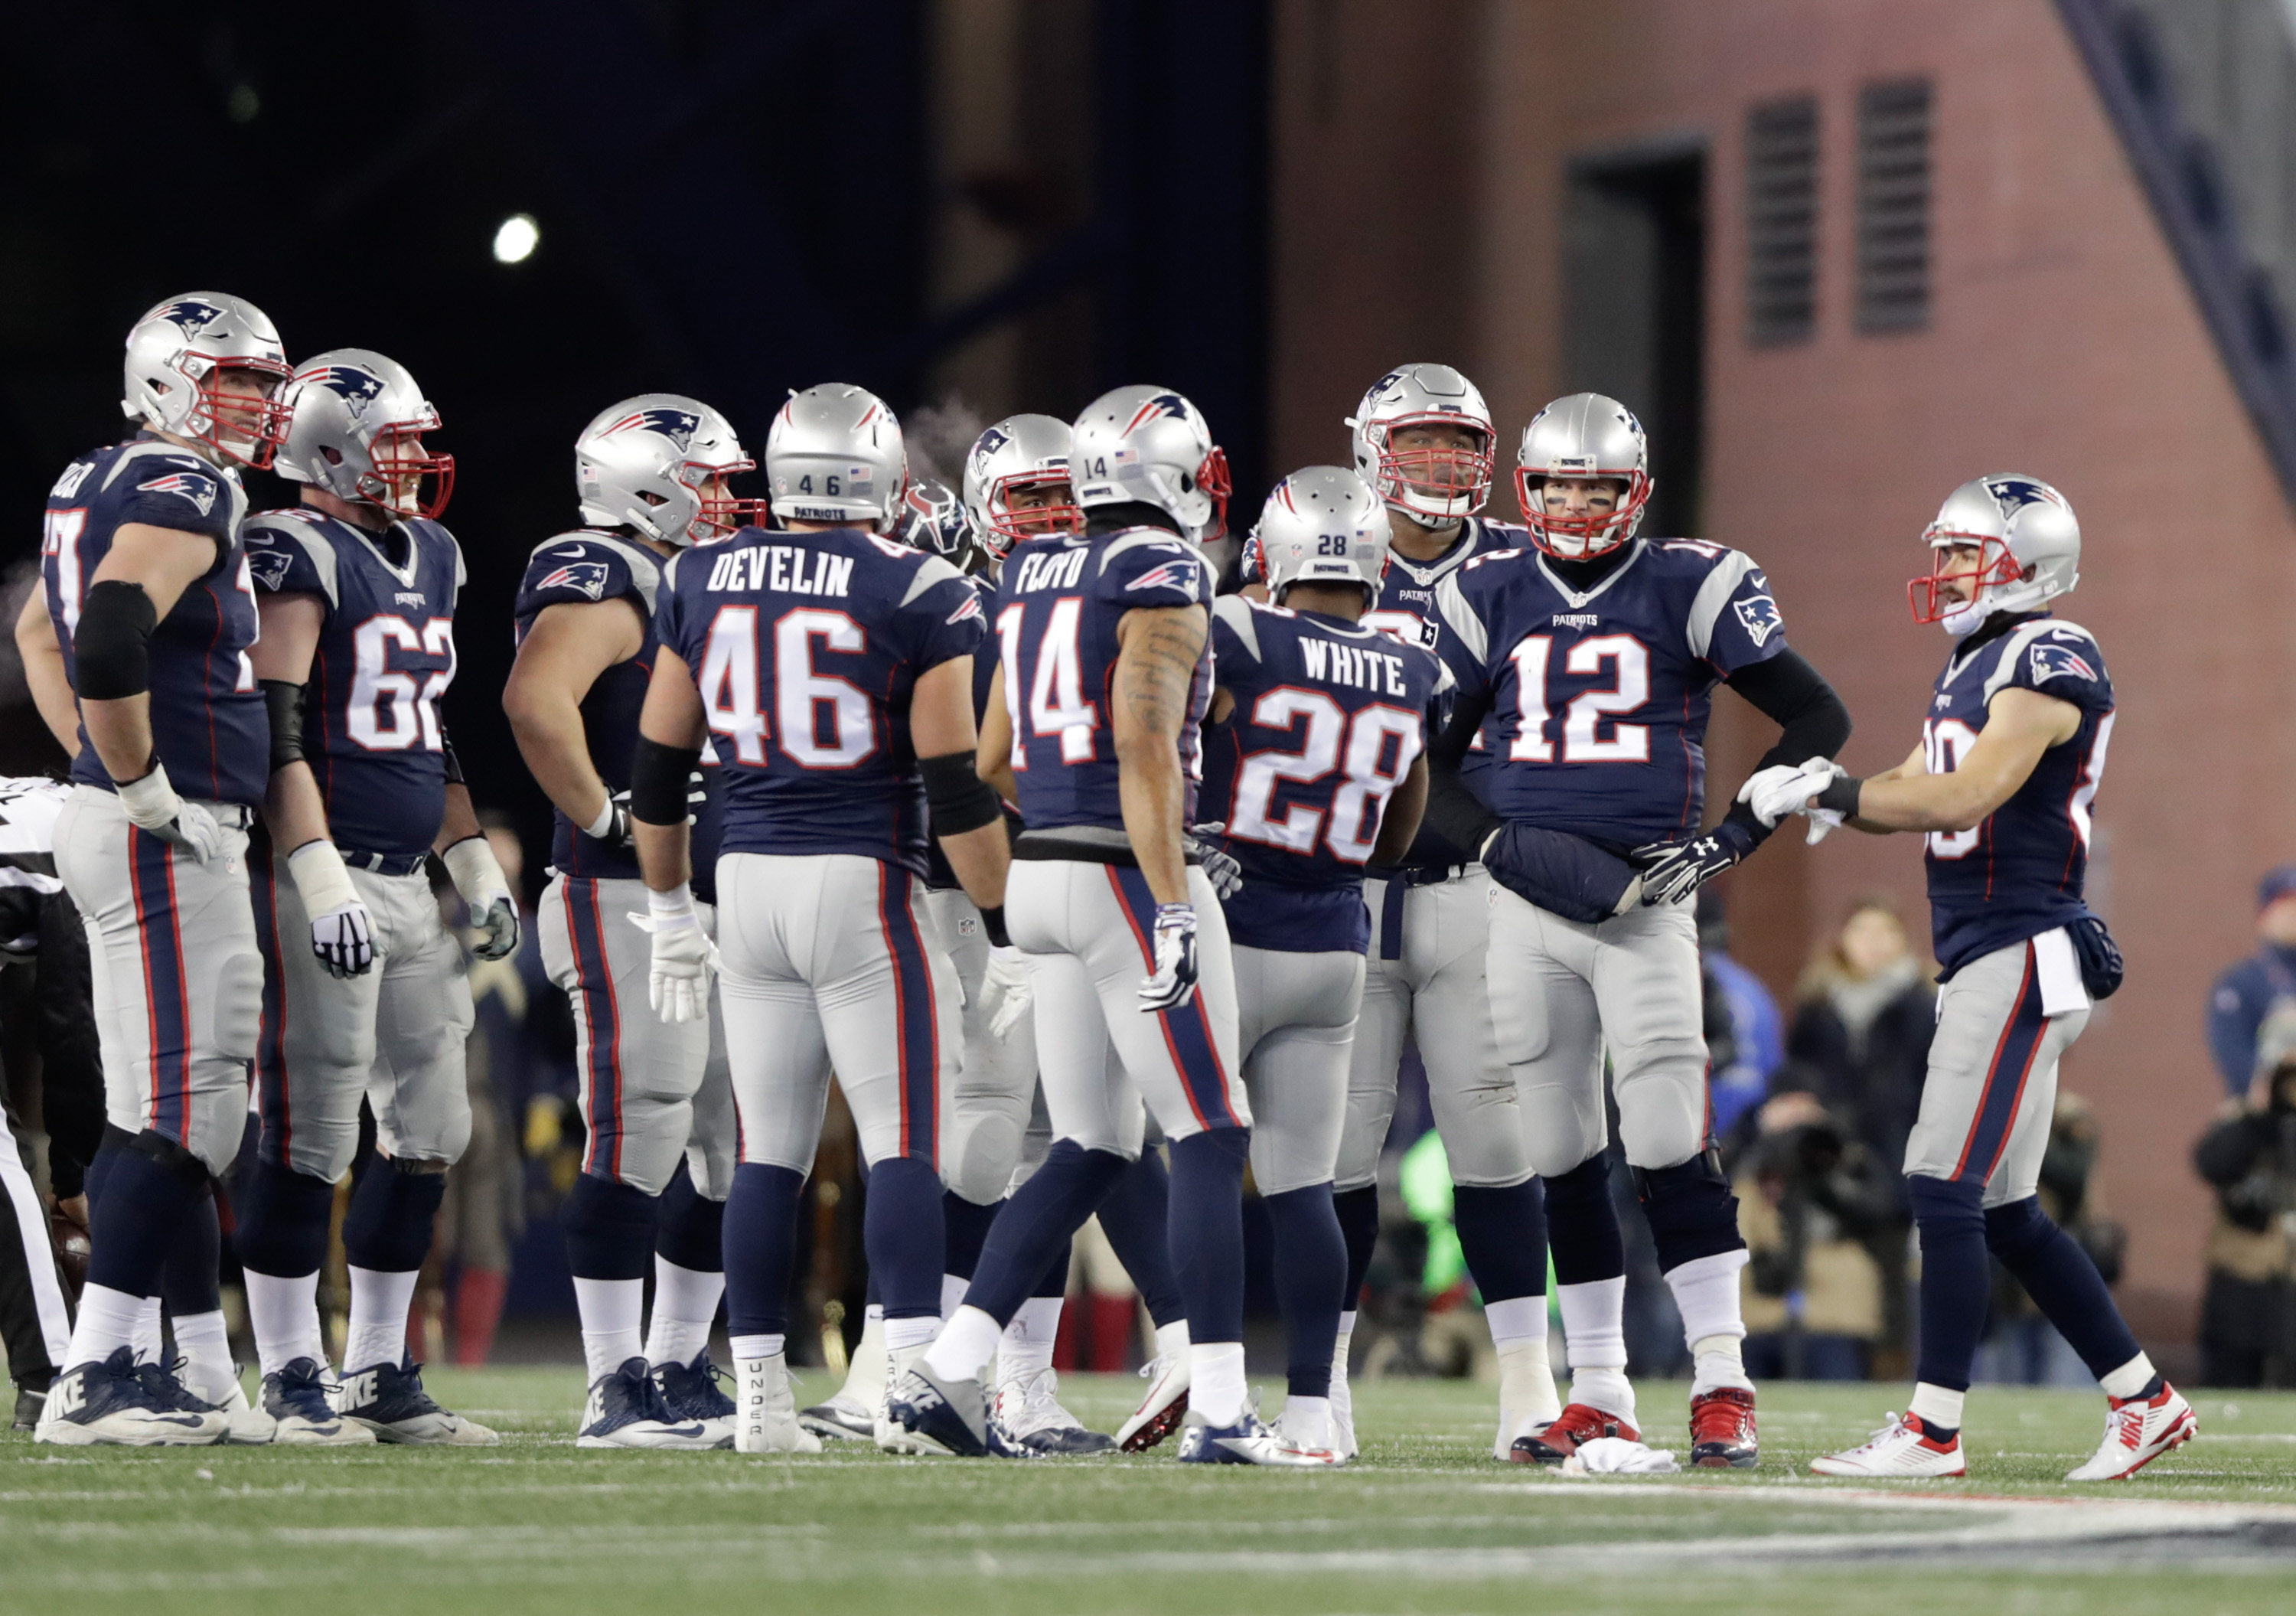 new england patriots 3 greatest strengths heading into super bowl new england patriots